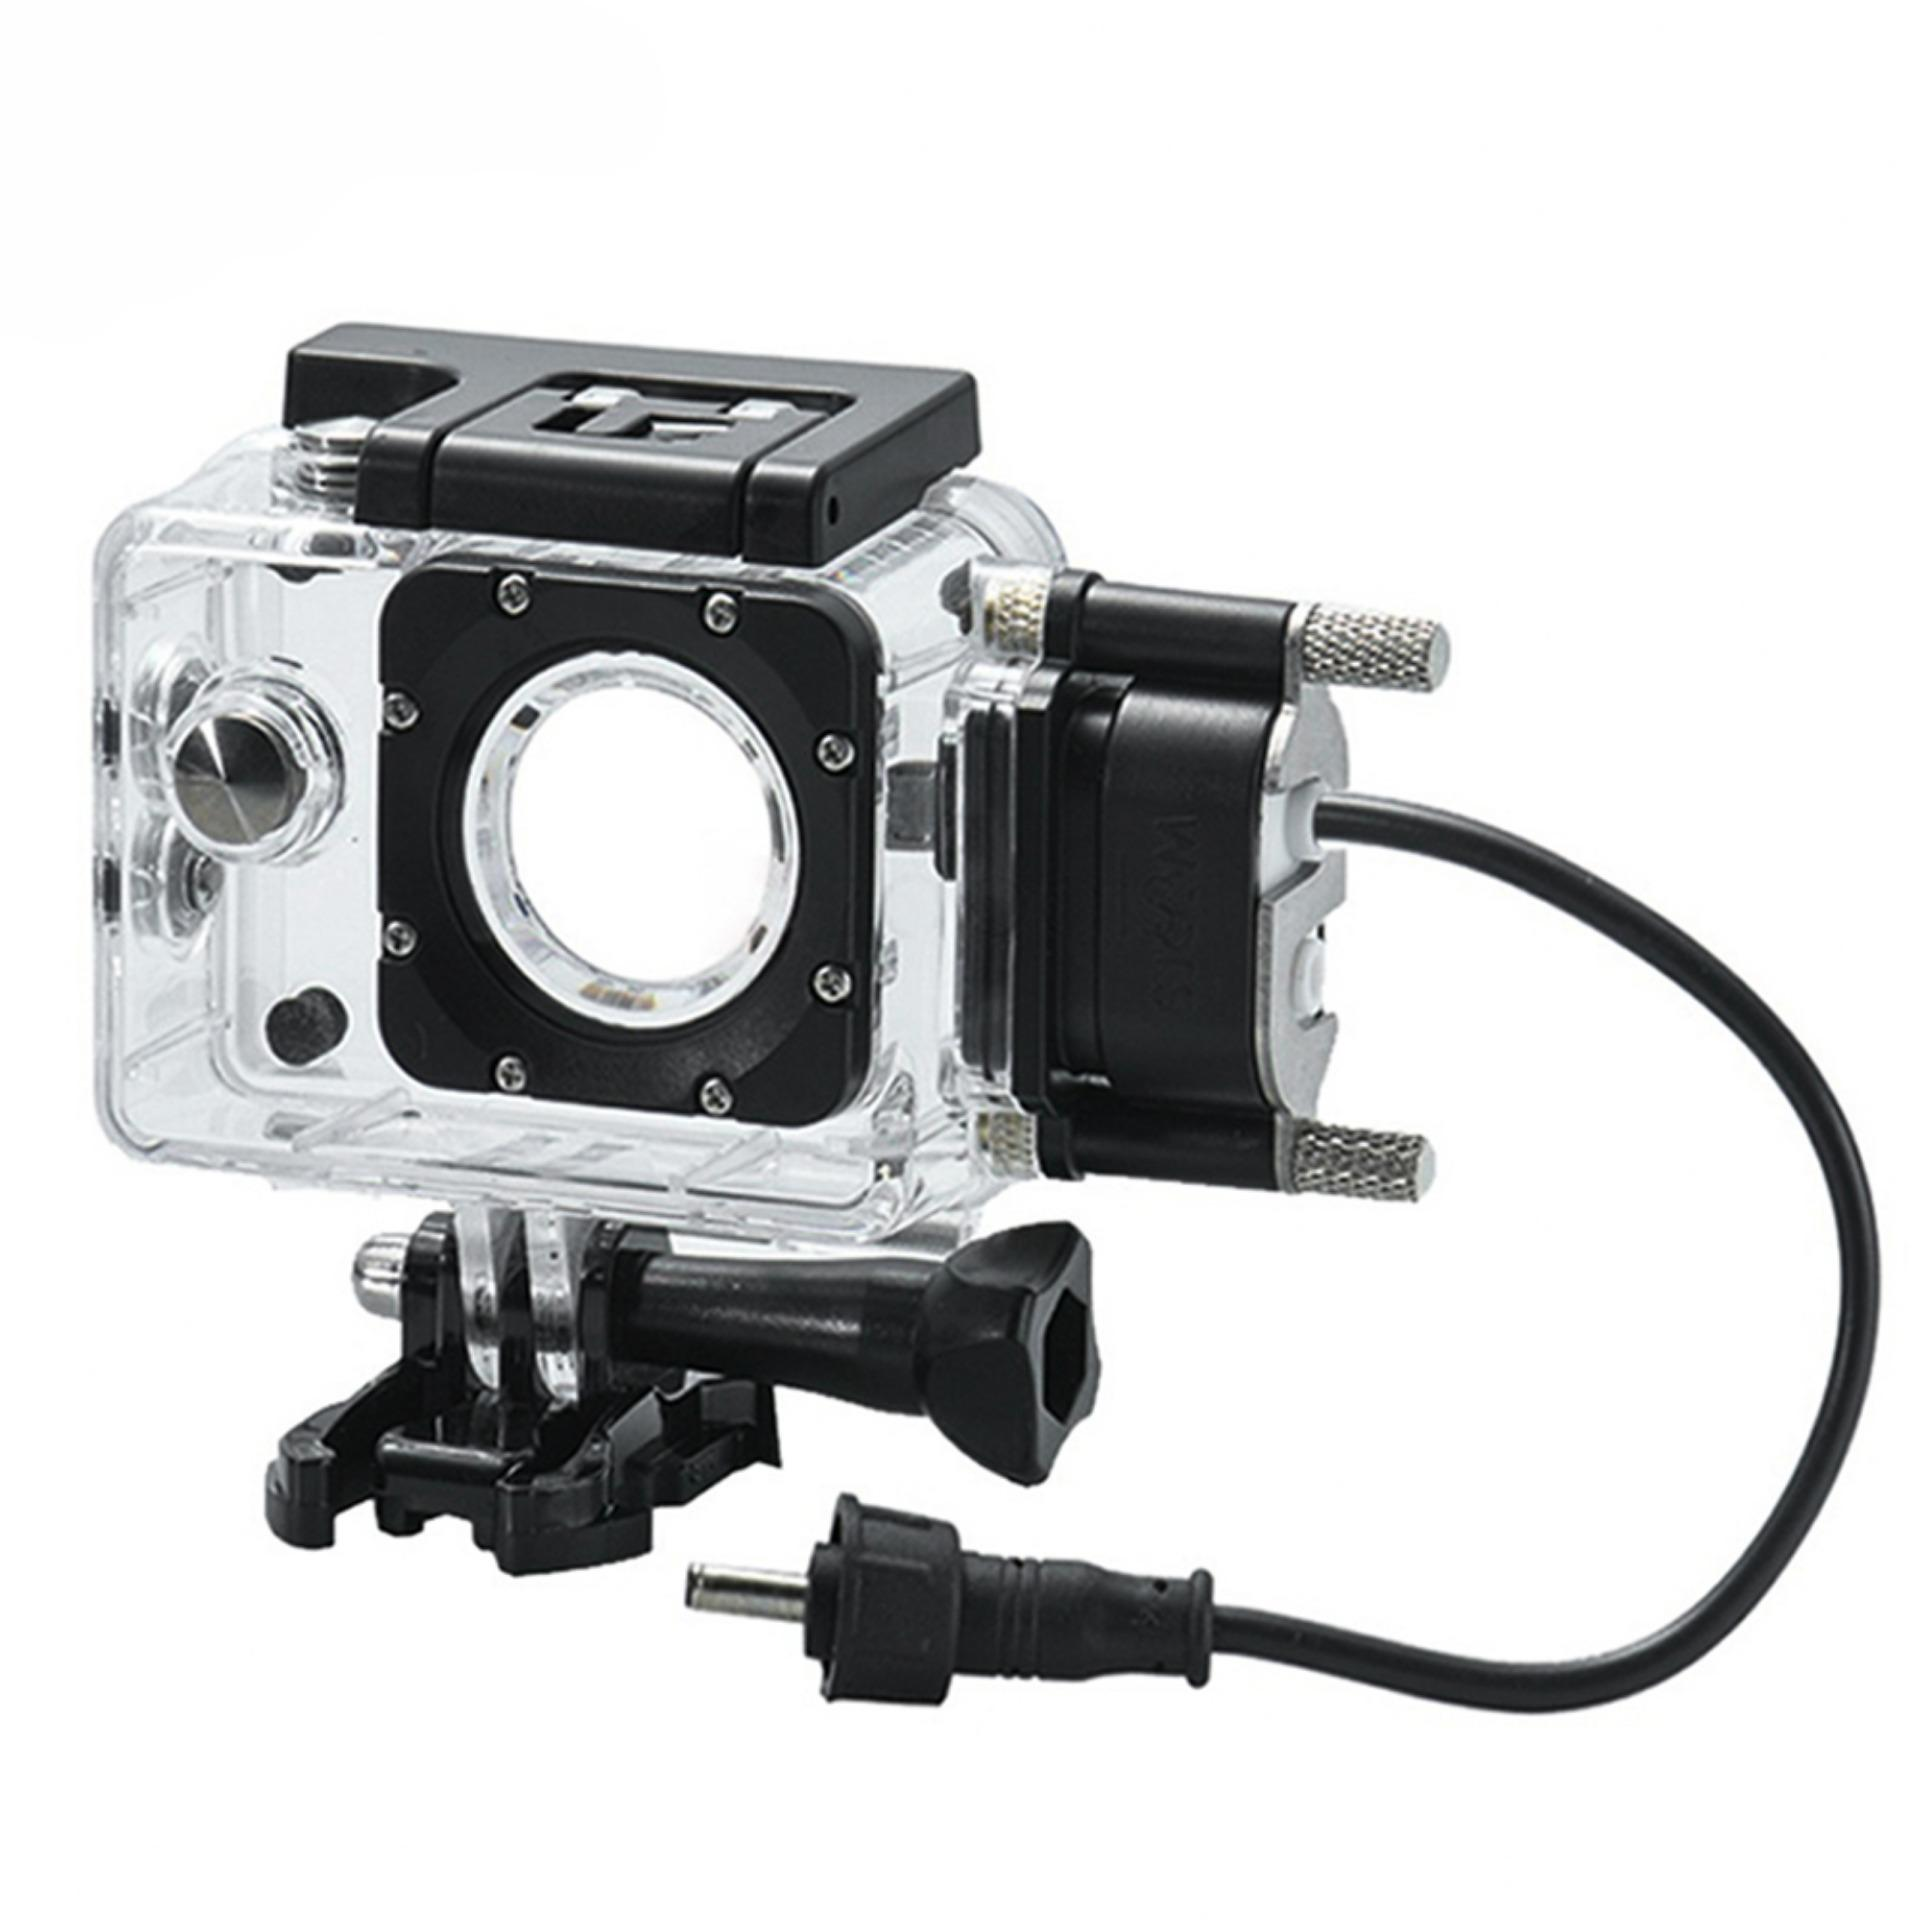 Sjcam Sj4000 Series Waterproof Case And Car Charger For Motorcycle By Sjcam